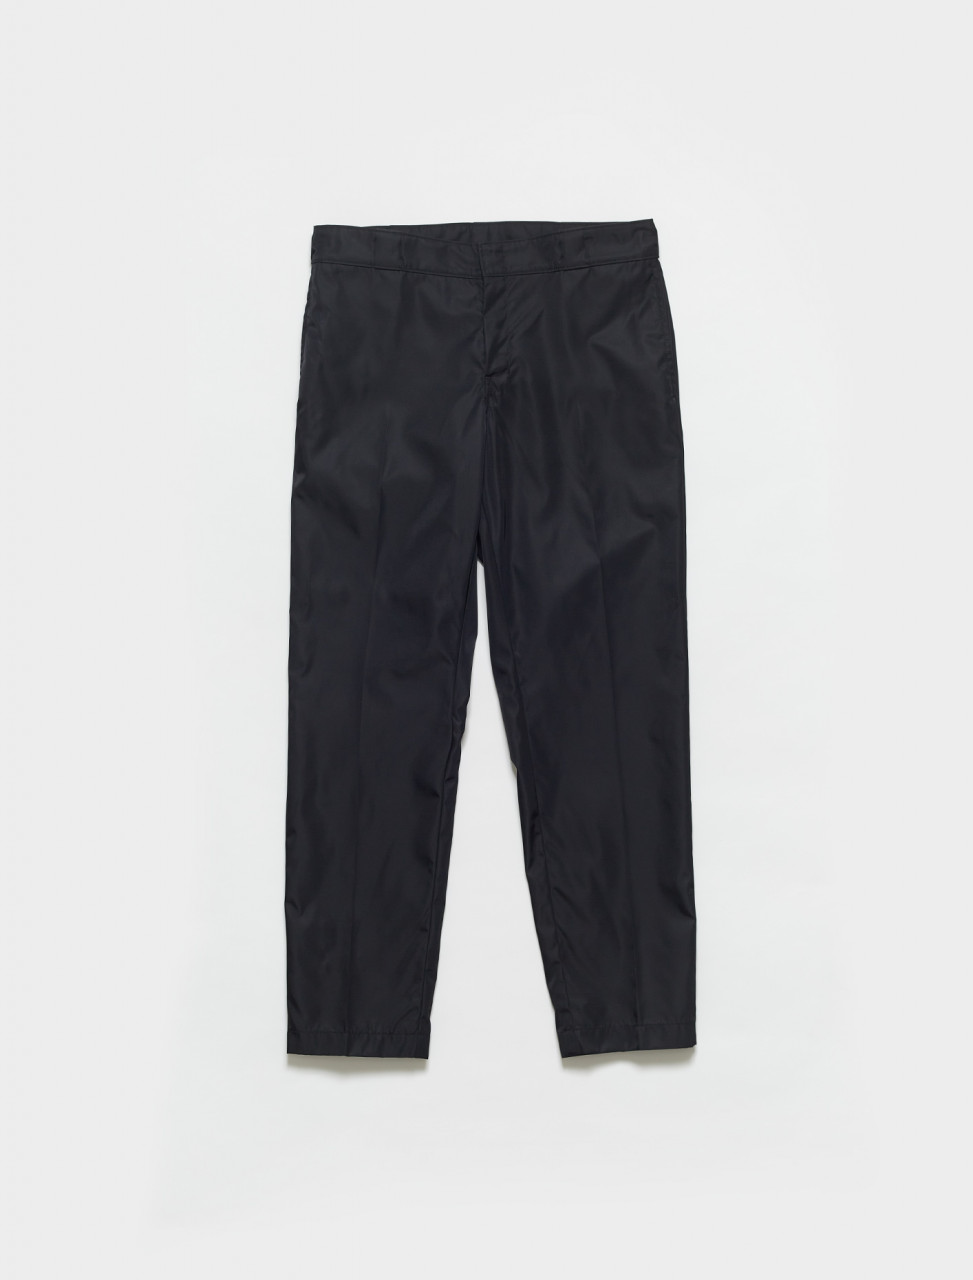 SPG75-F0002 PRADA RE NYLON TROUSERS WITH ANKLE FASTENINGS IN BLACK